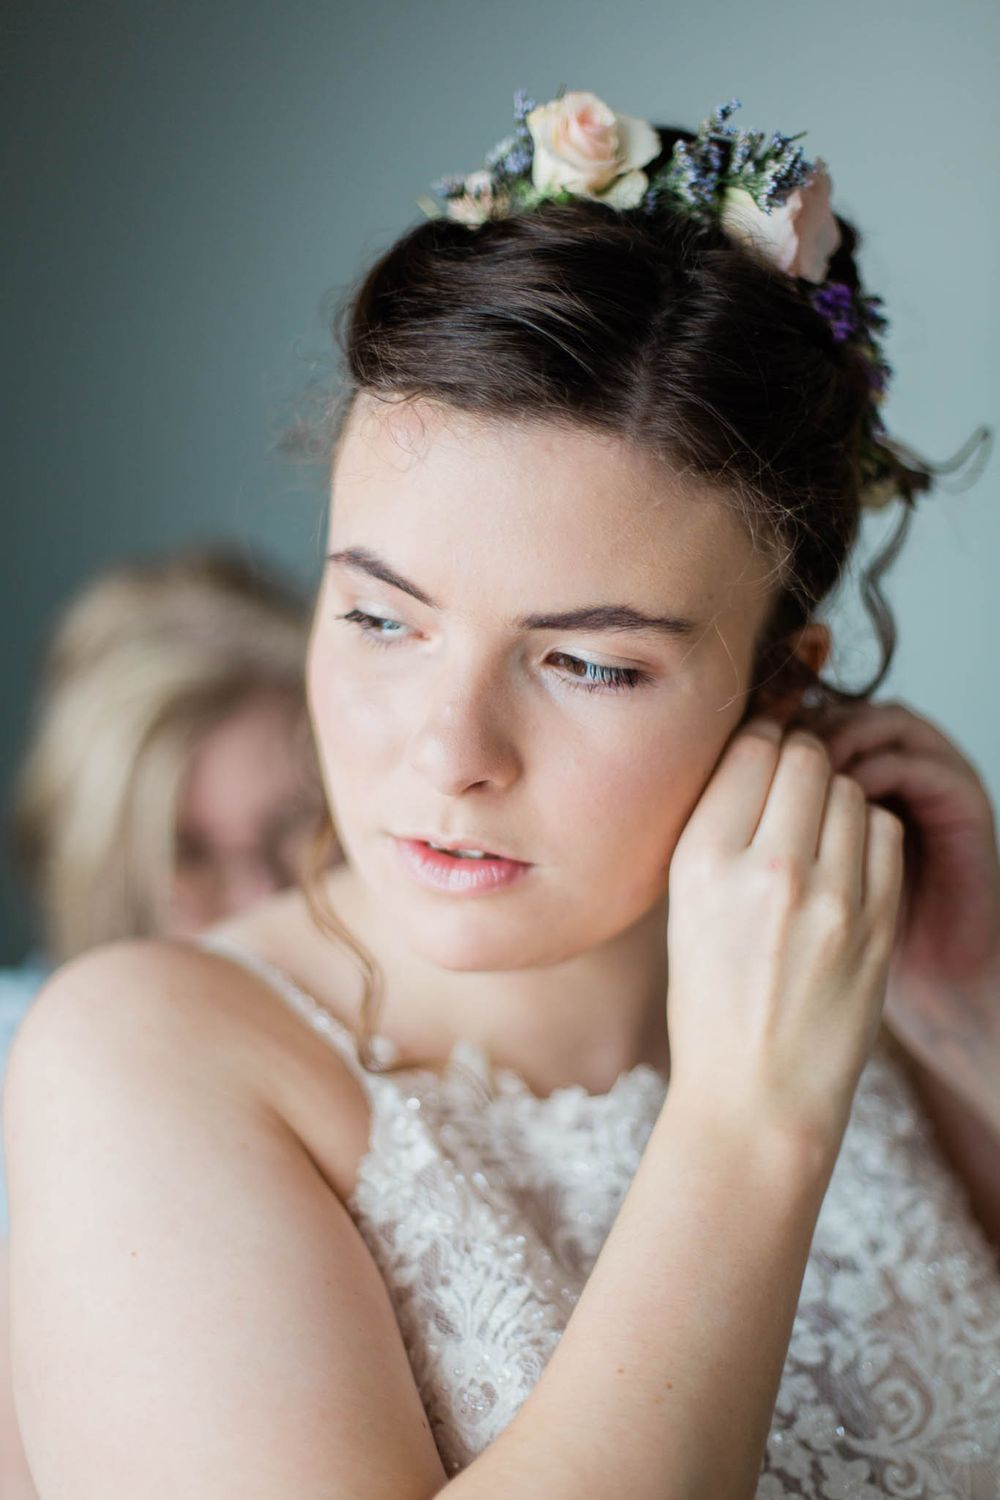 Iowa bride putting her earrings in while looking out the window.